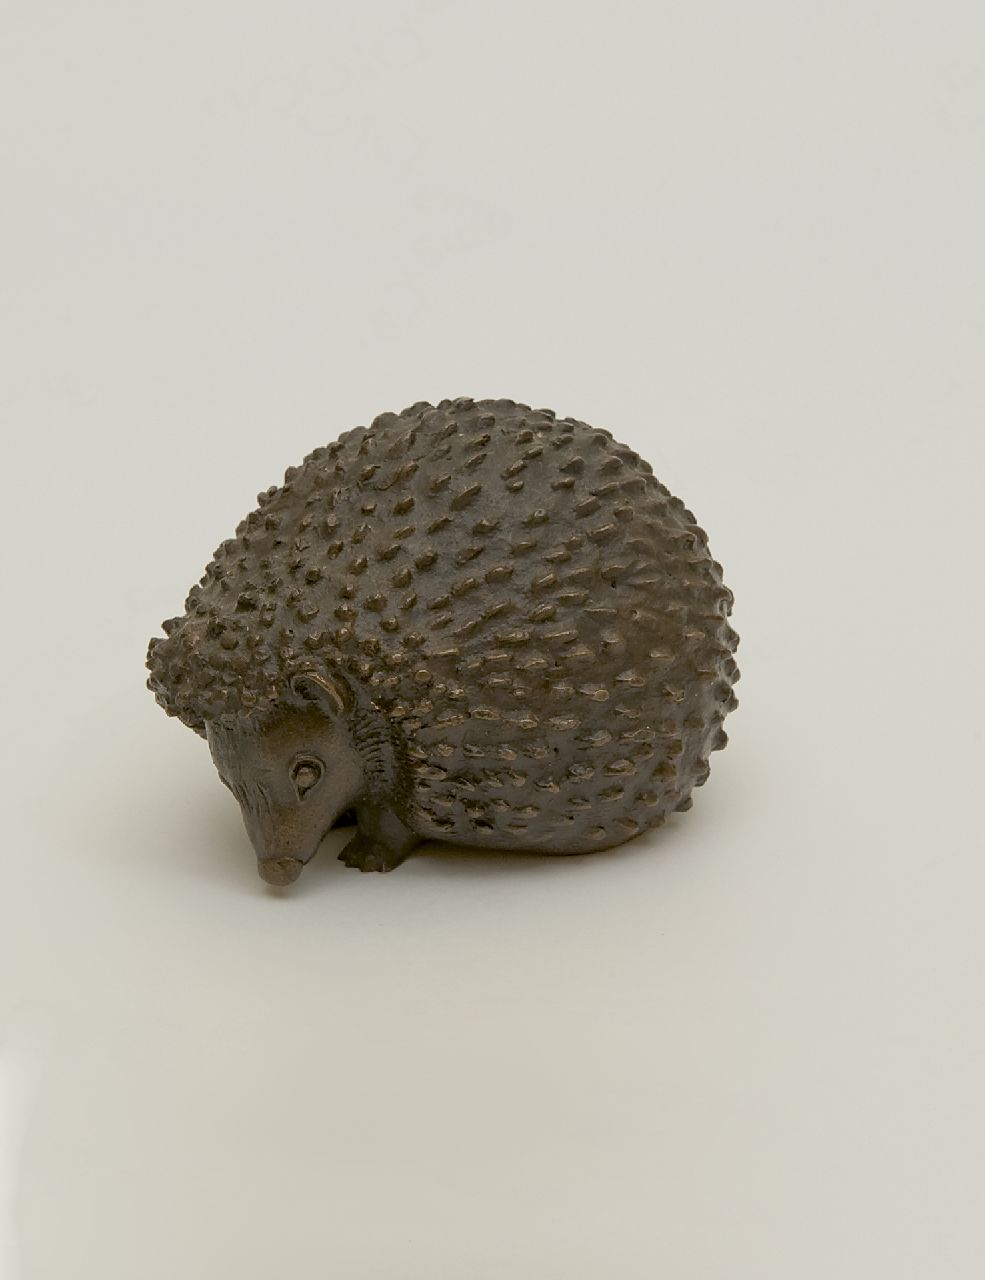 Luise Scherf | Hedgehog, bronze, 7.2 x 9.7 cm, signed on bottom and manufactured circa 1950